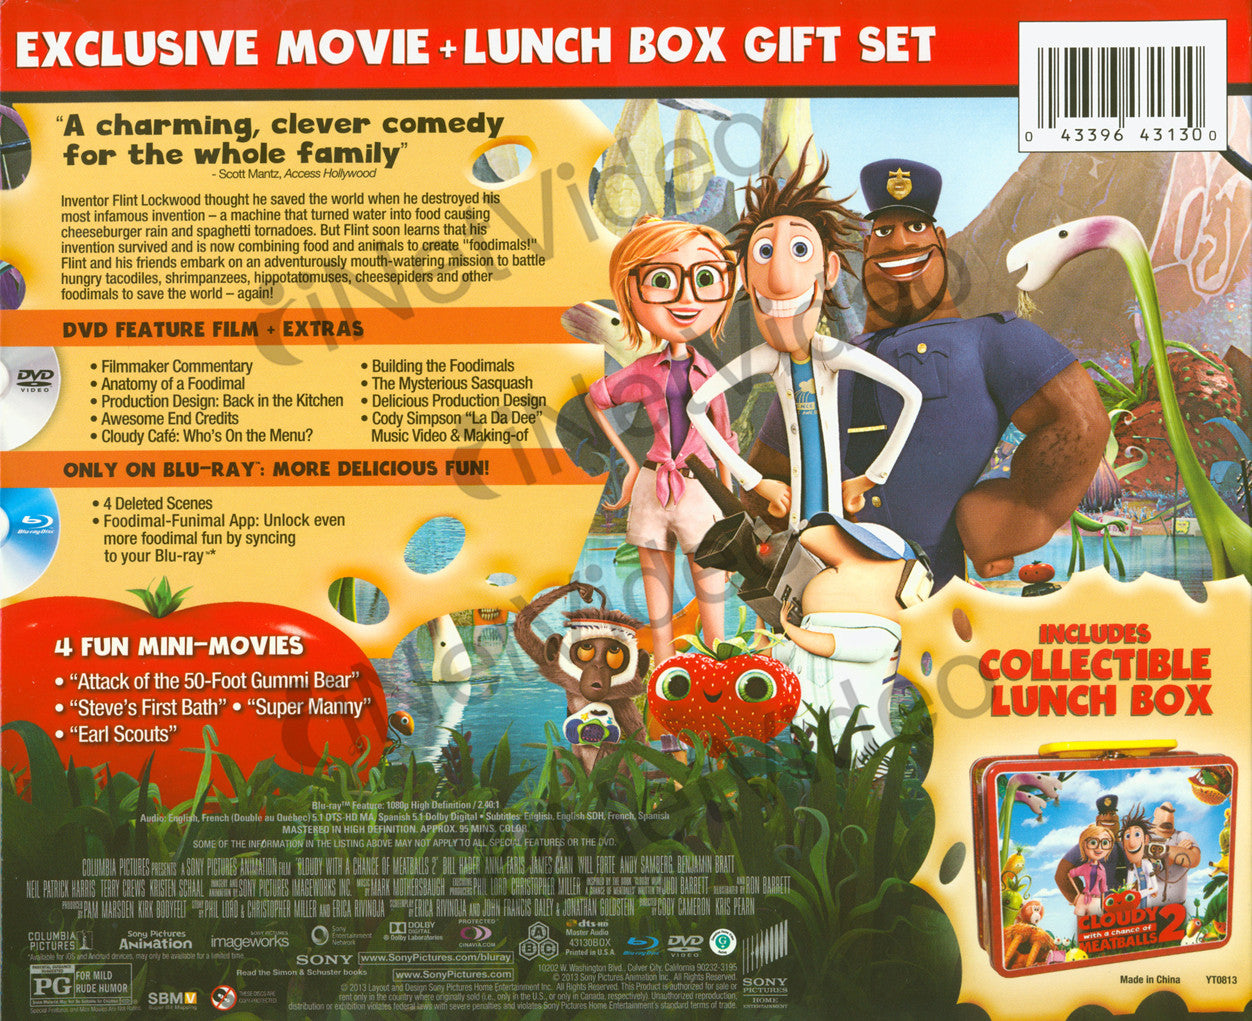 Cloudy With a Chance of Meatballs (DVD + Blu-ray + Lunchbox) (Blu